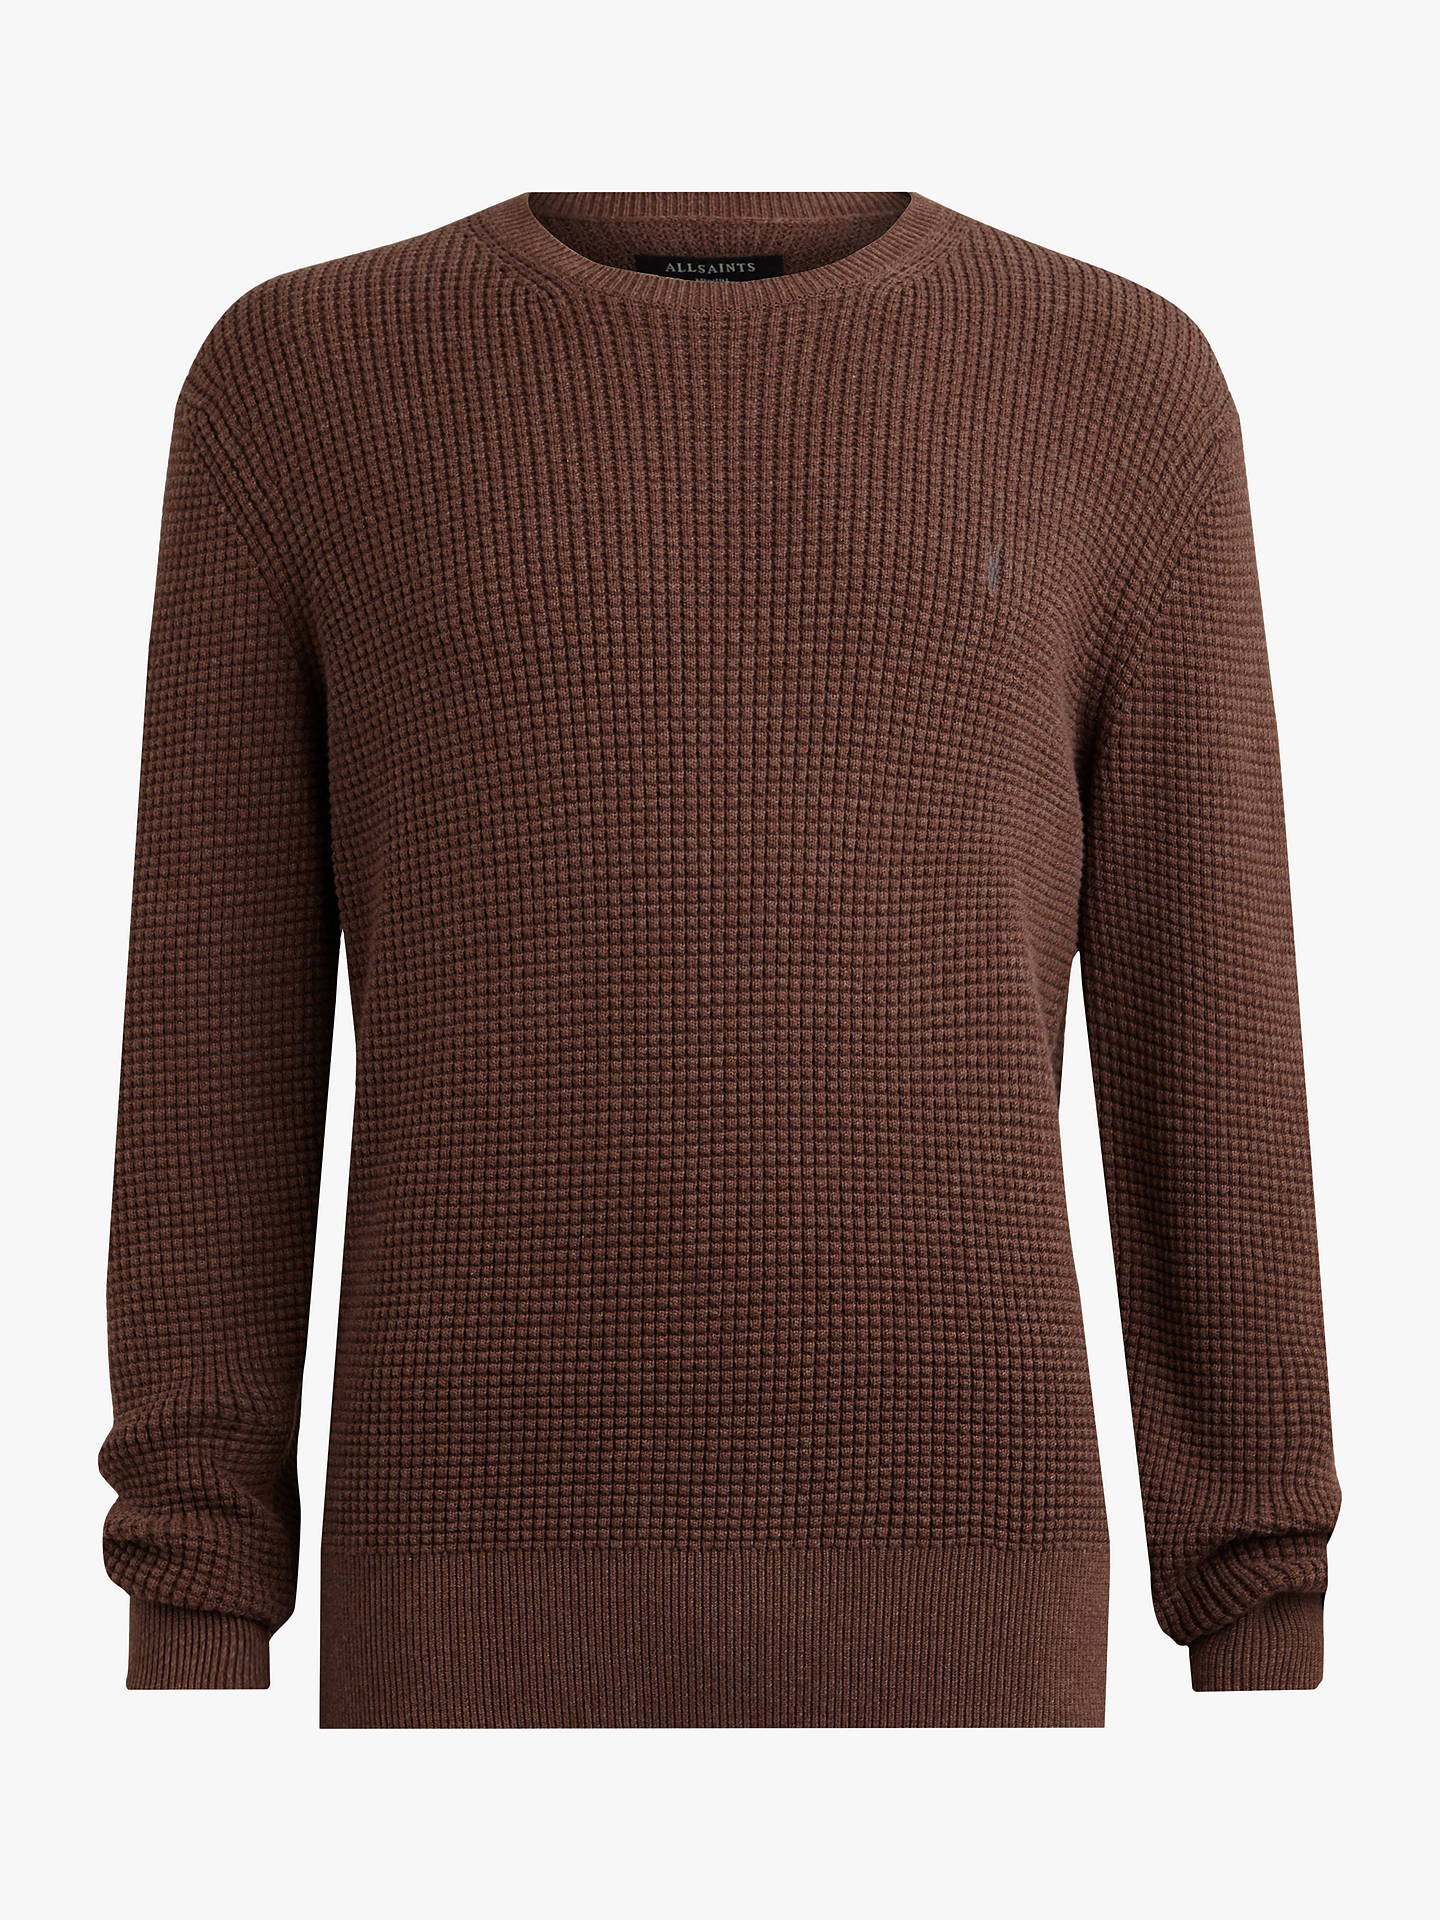 975bb04004d AllSaints Wells Textured Crew Jumper, Sulphur Brown Marl at John ...